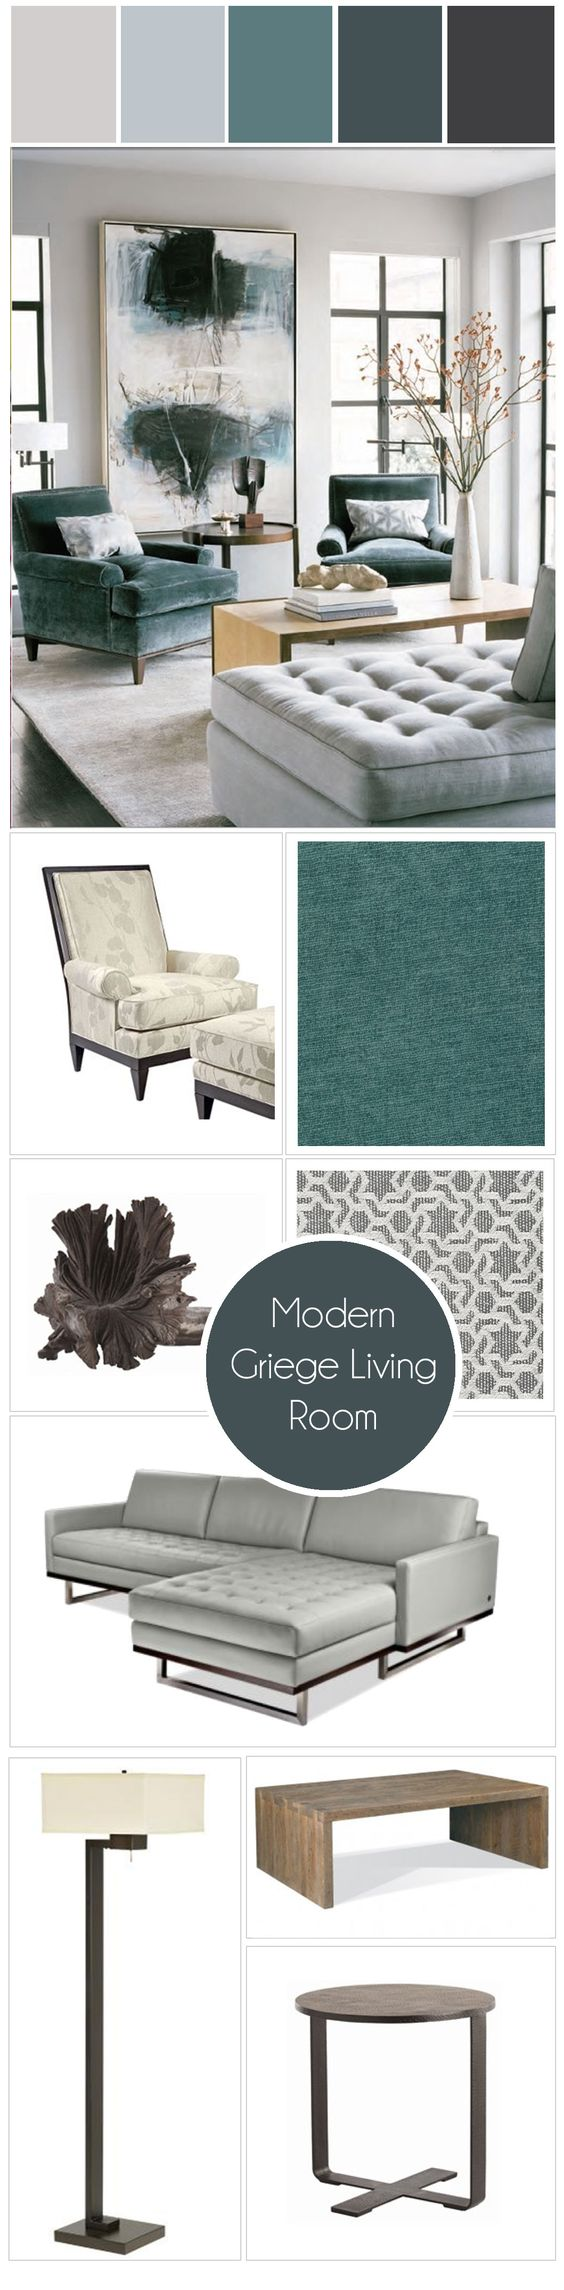 Canada's Got Colour Winner | Griege + Teal  Modern Living Room. I think this is the color combo I'm going with to go with my turquoise chairs.